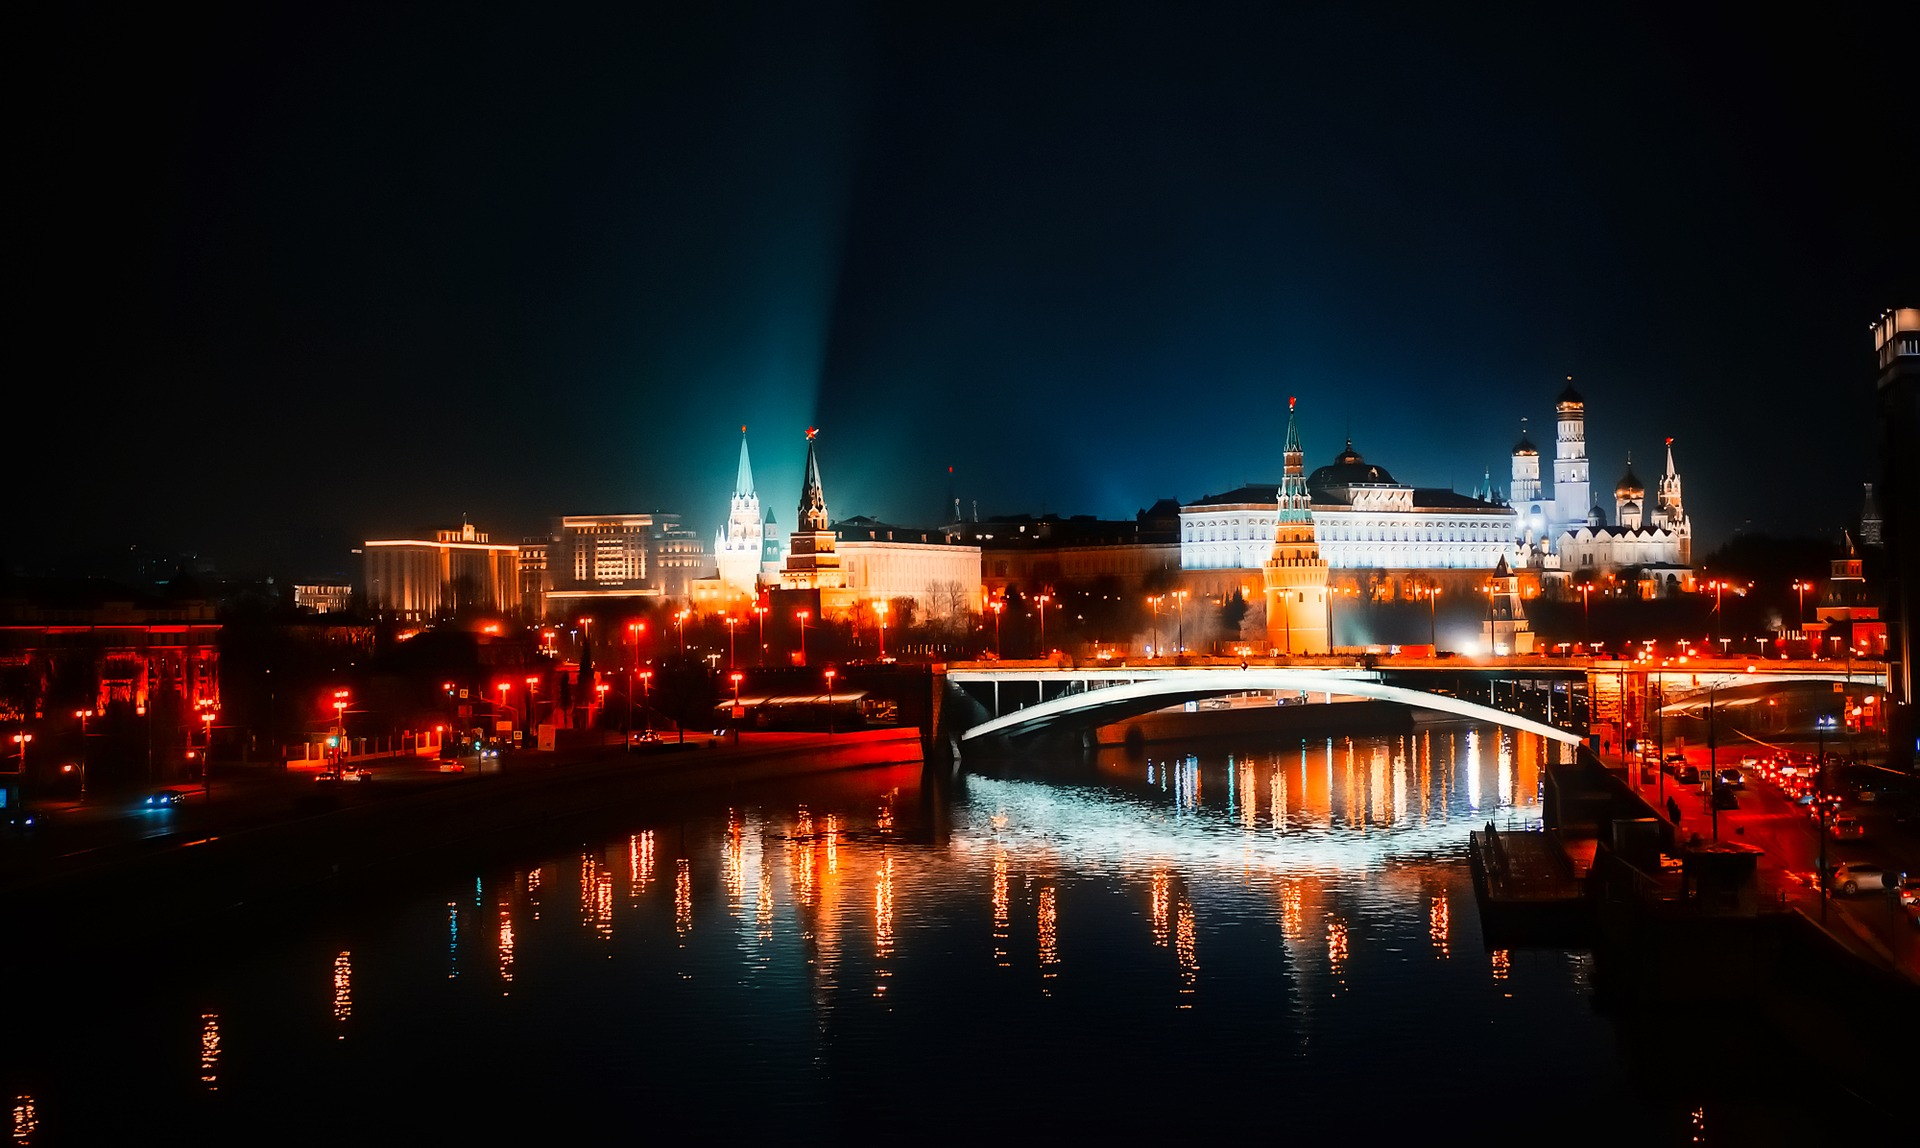 Moscow, Russia at night